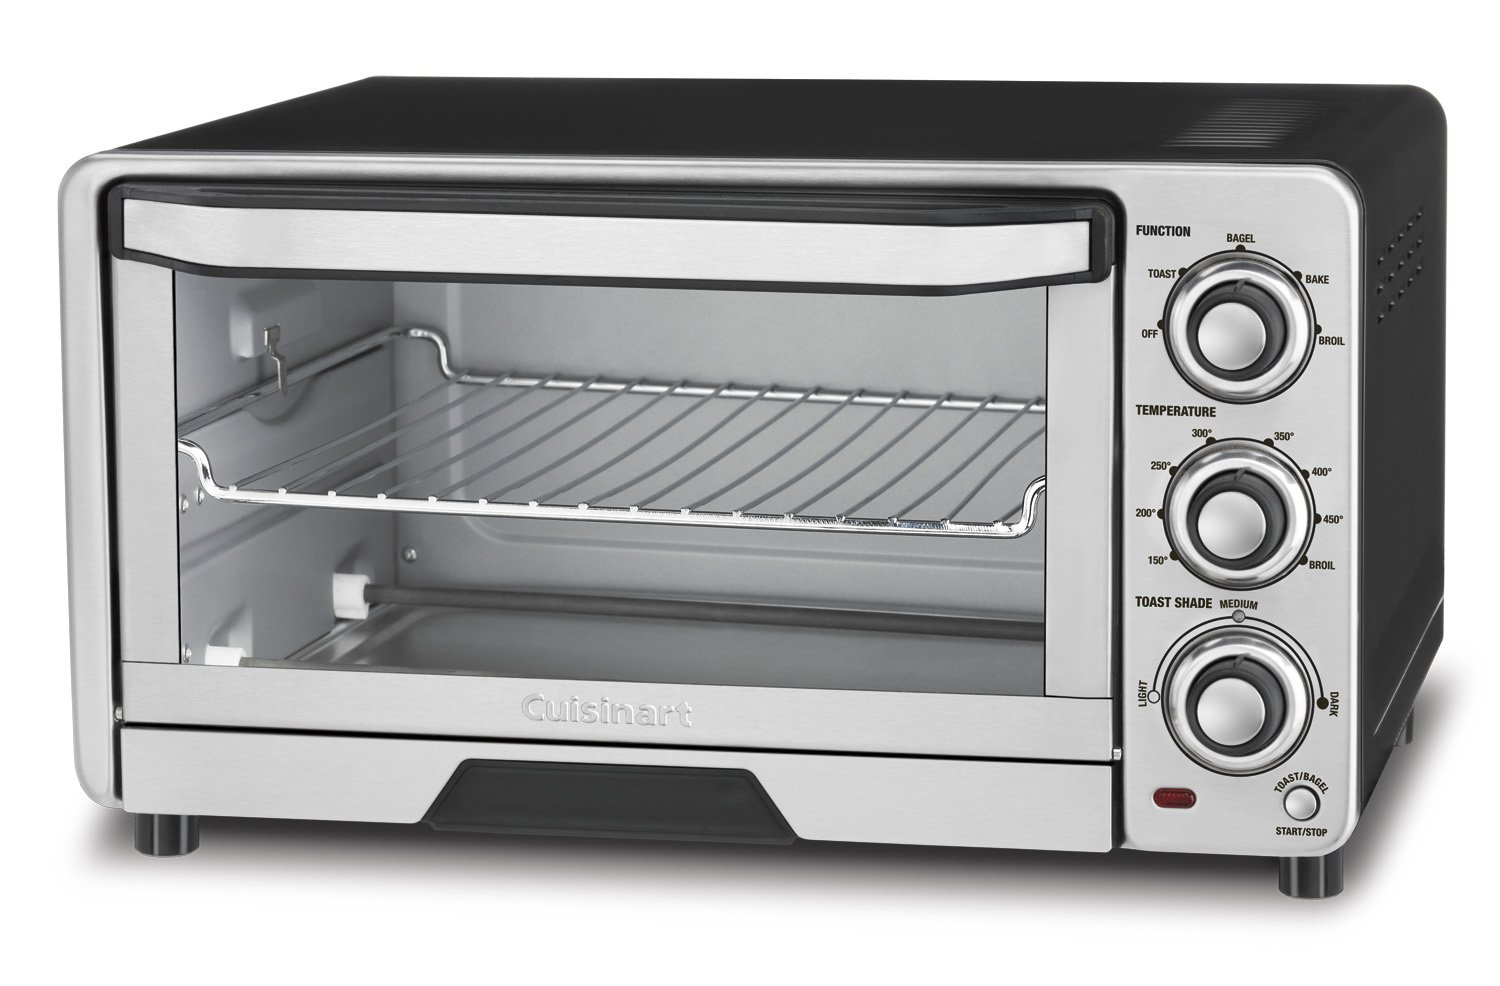 Countertop Oven With Cooktop : Top 10 Best Toaster Ovens - Best Toaster Ovens Review